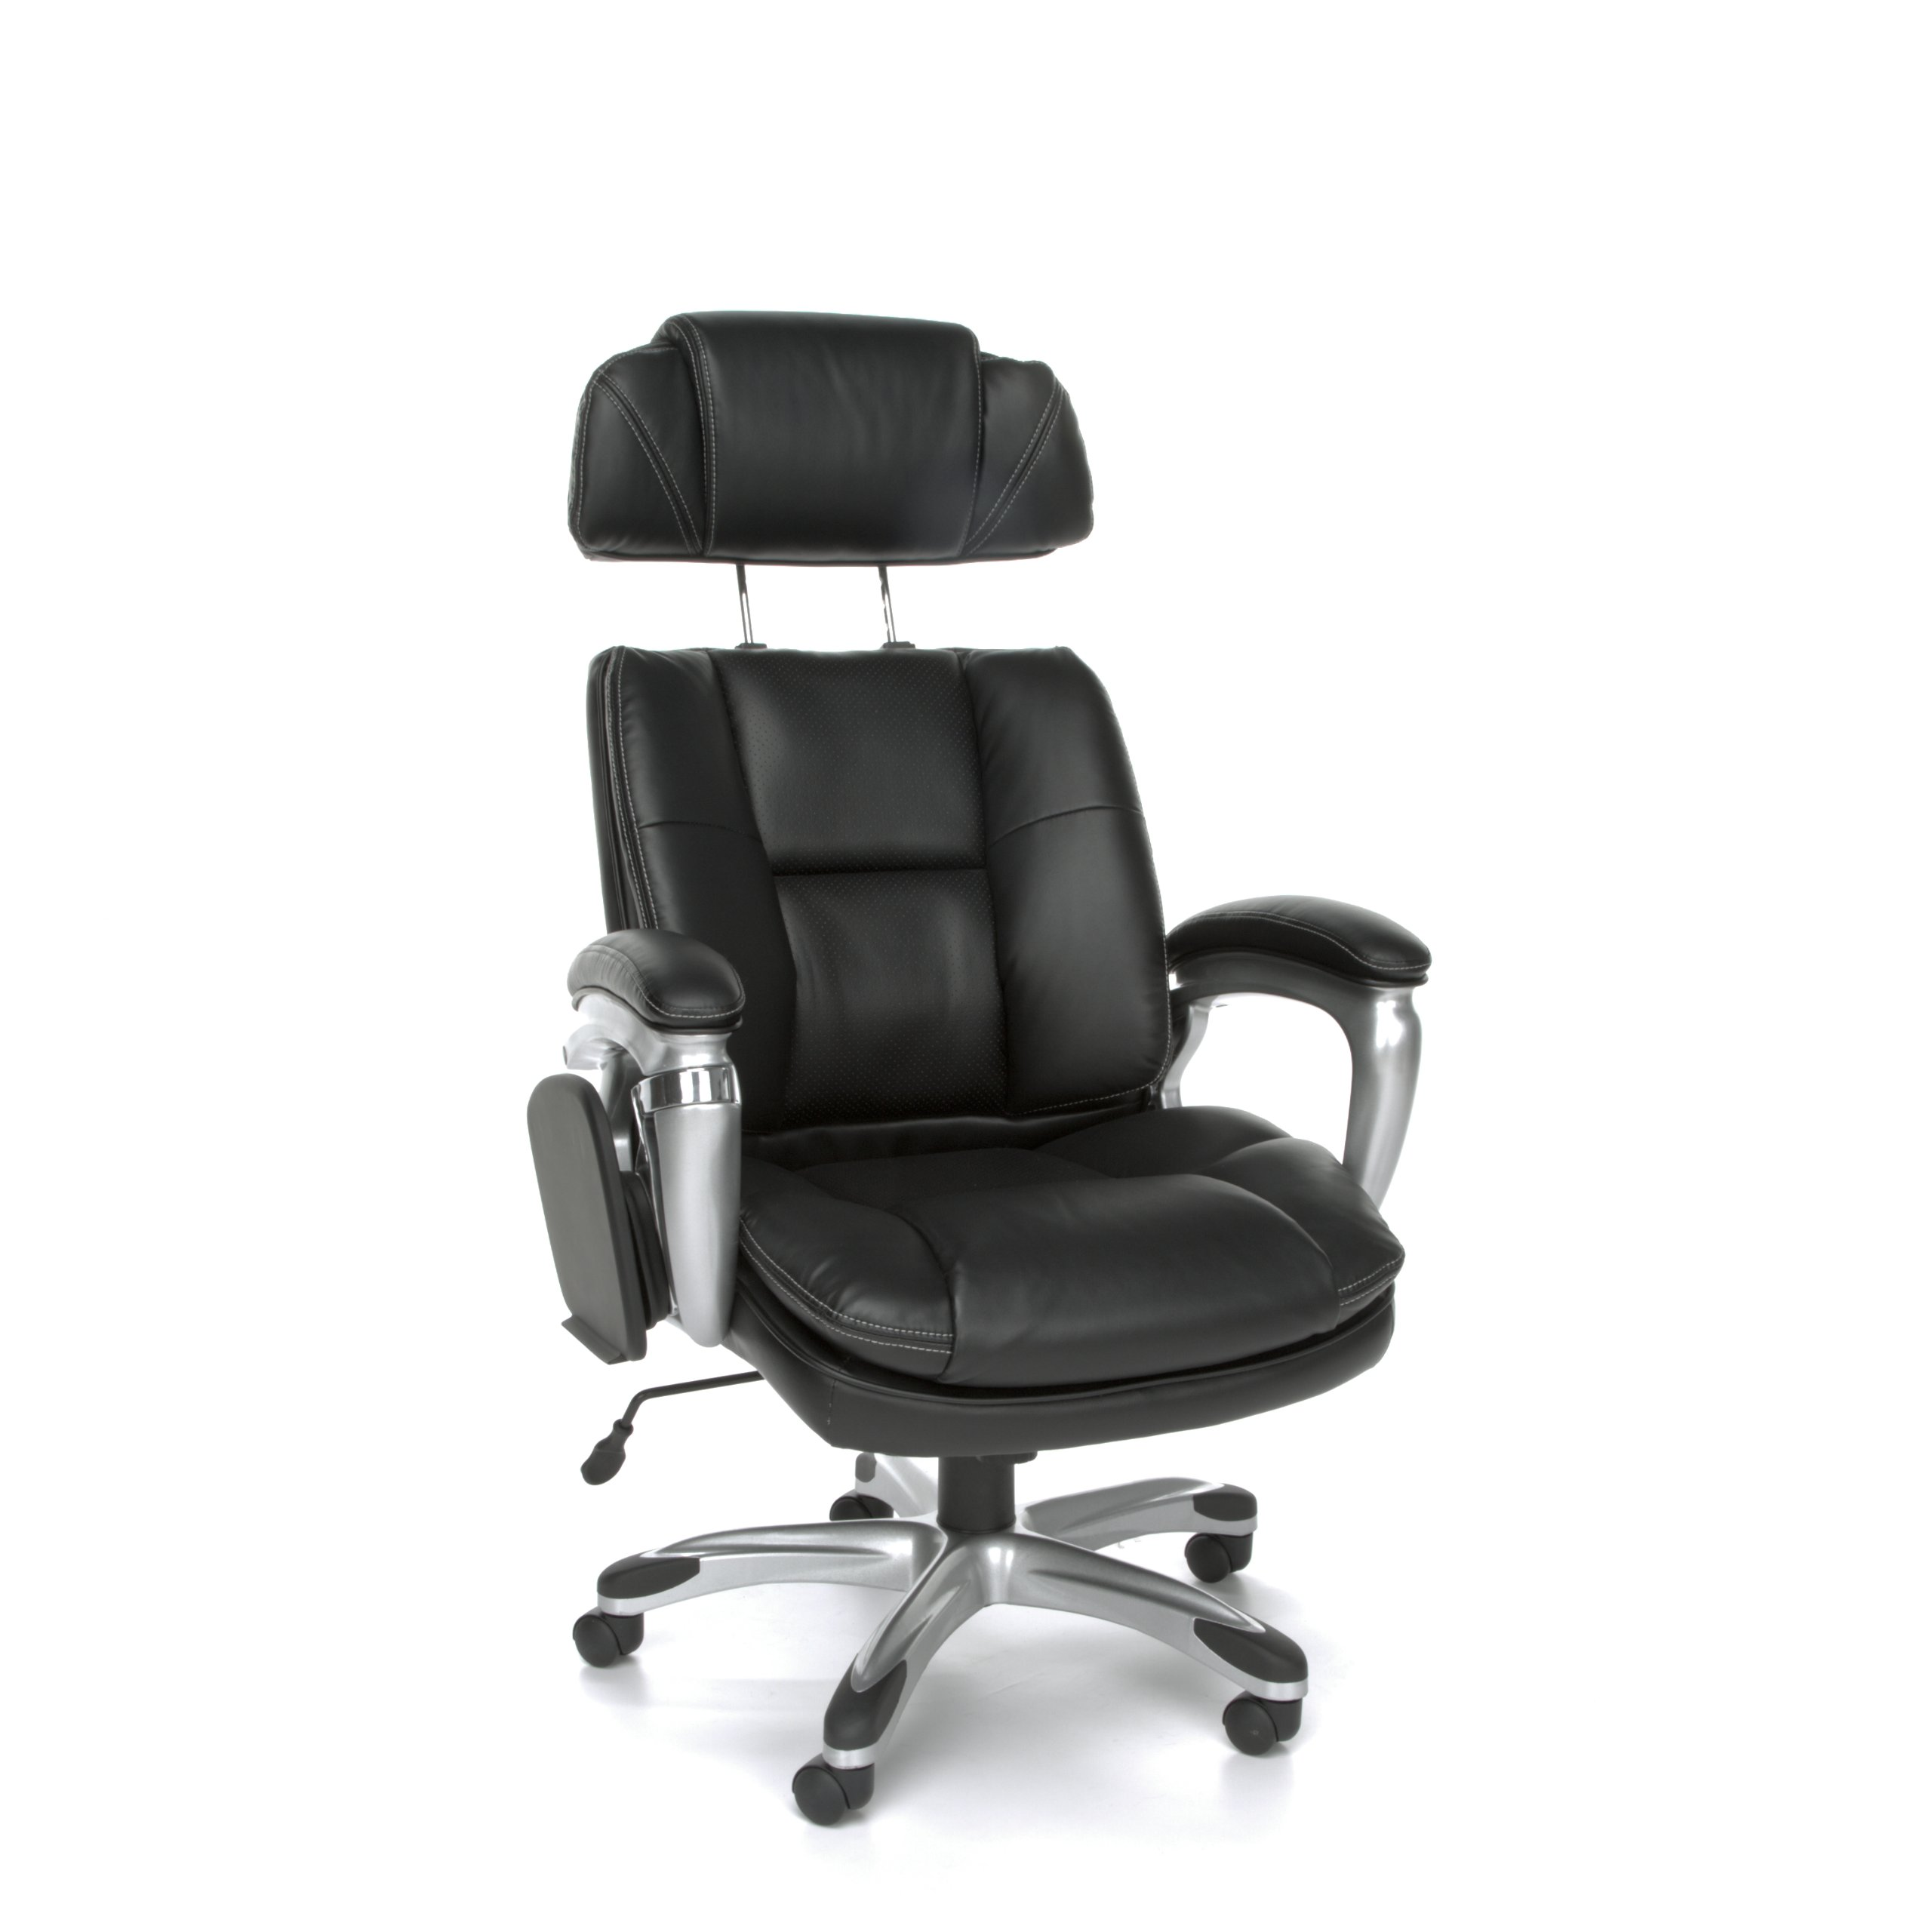 OFM ORO100 Leather Tablet Chair with Adjustable Side Bolsters